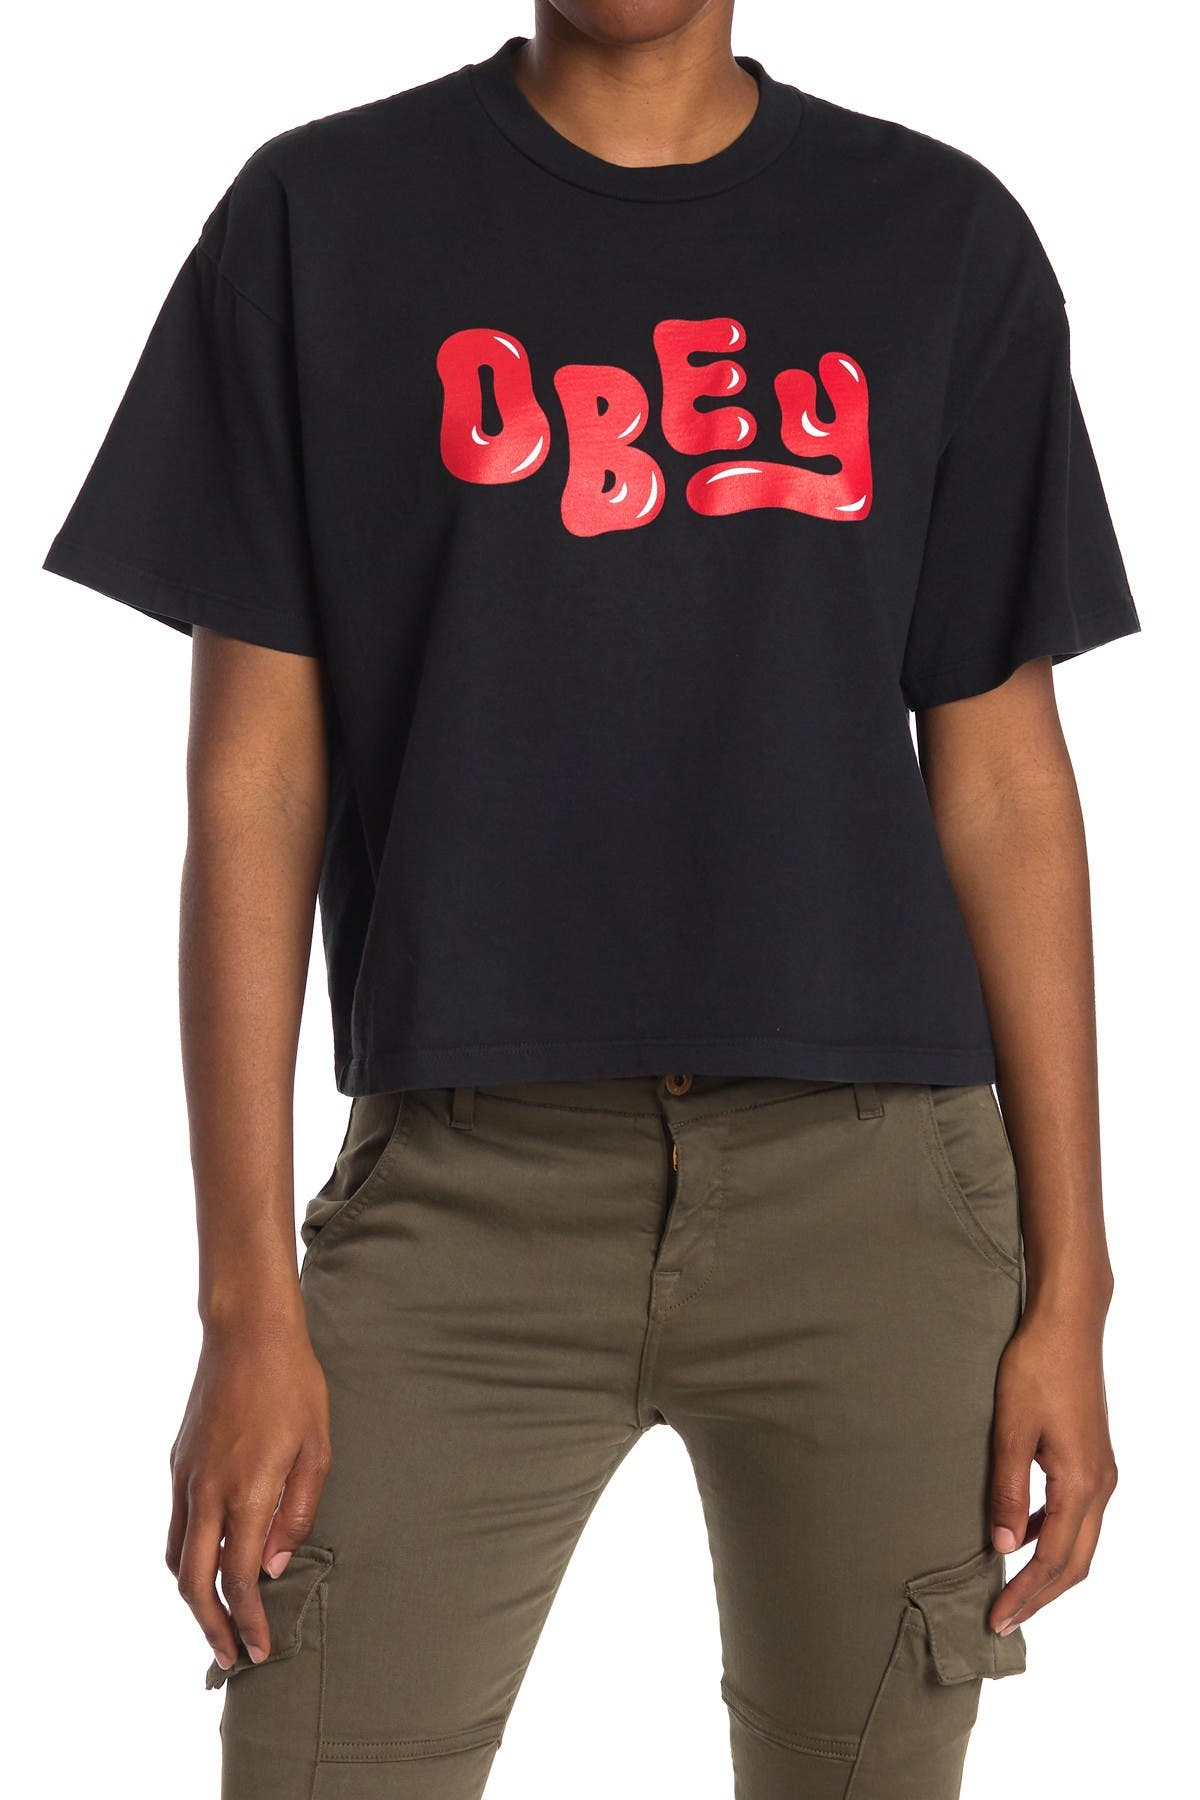 Image of Obey Femme Short Sleeve T-Shirt